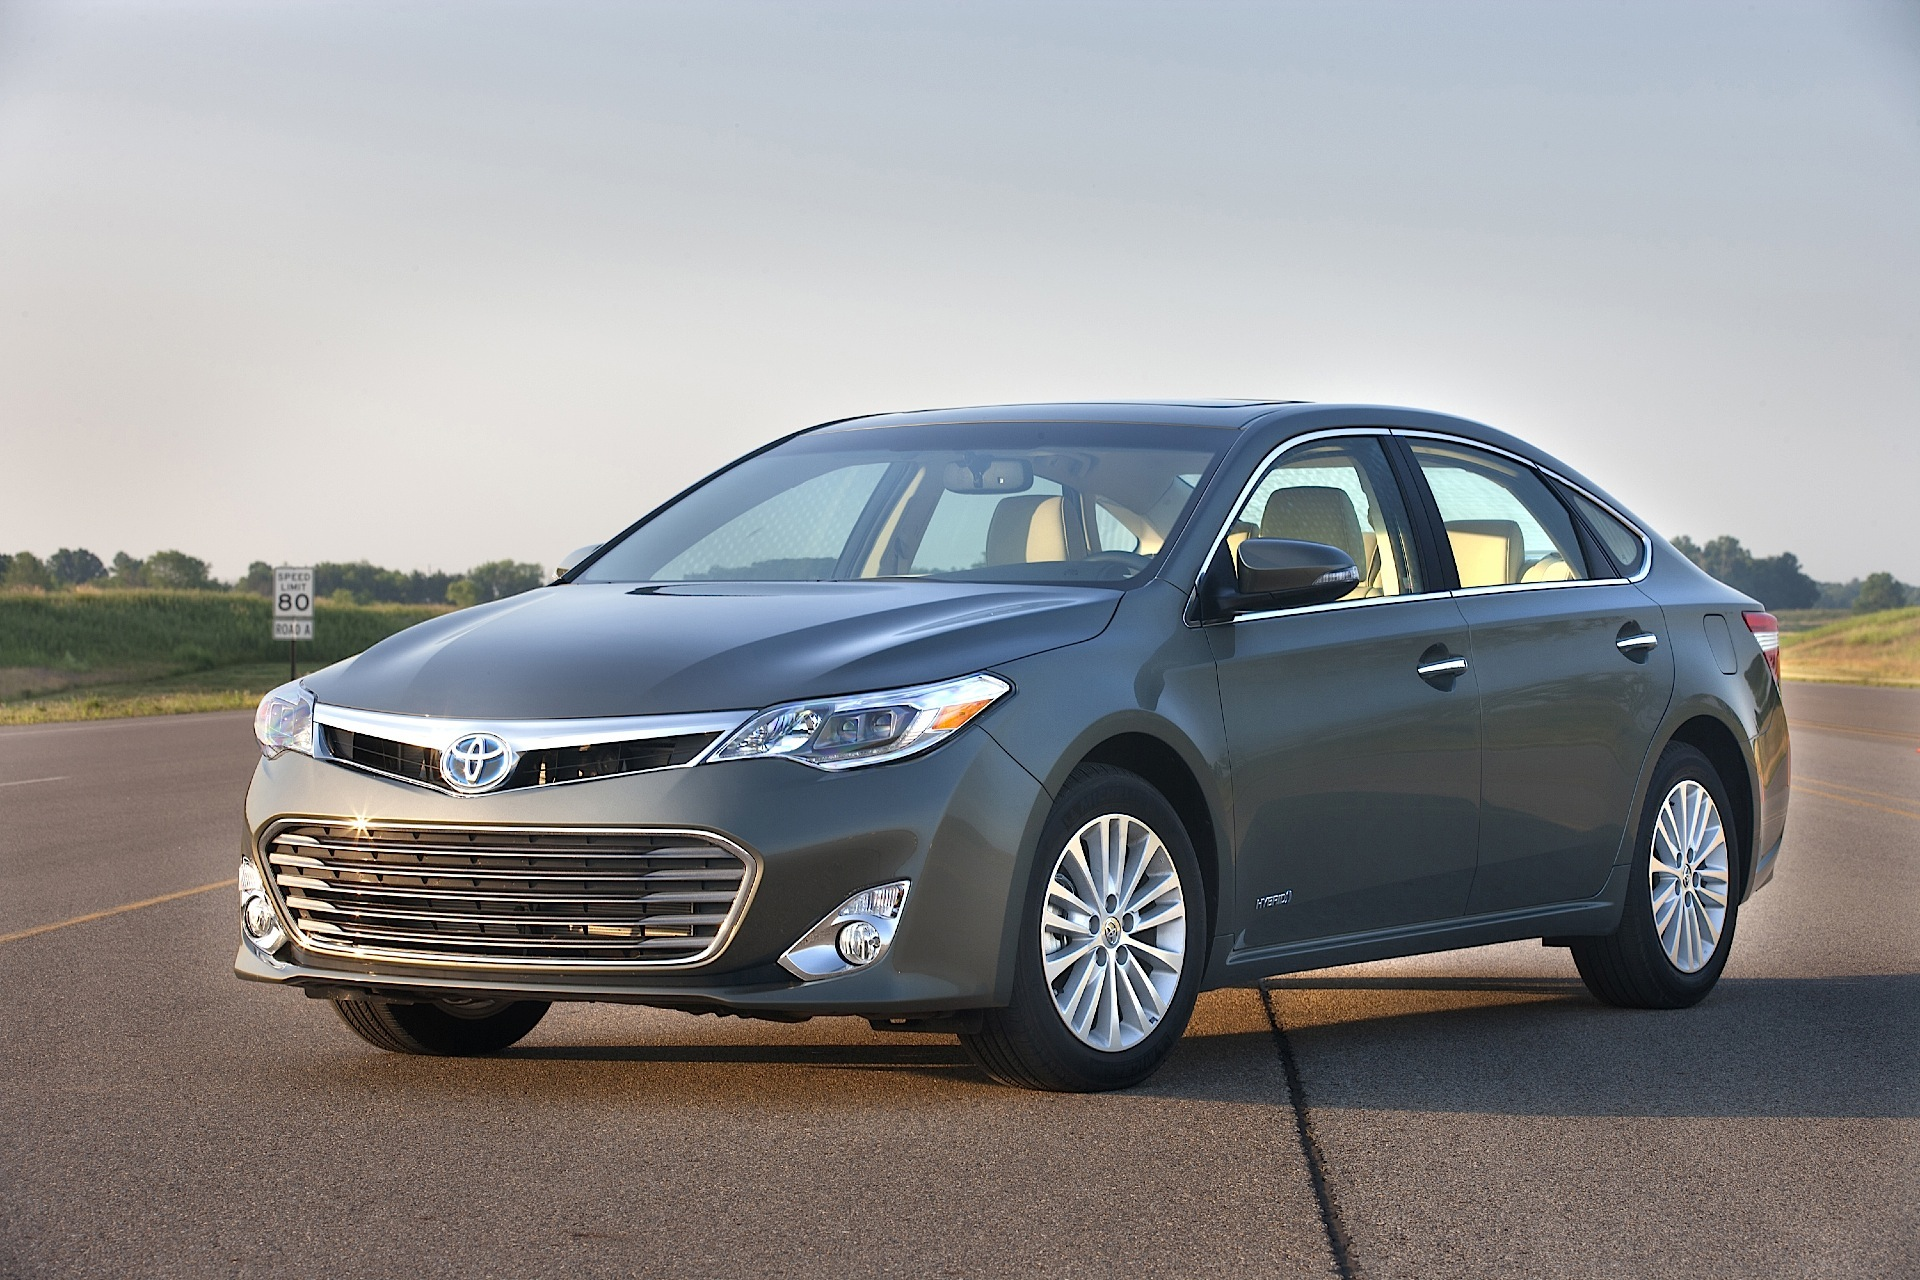 toyota avalon specs 2012 2013 2014 2015 autoevolution. Black Bedroom Furniture Sets. Home Design Ideas